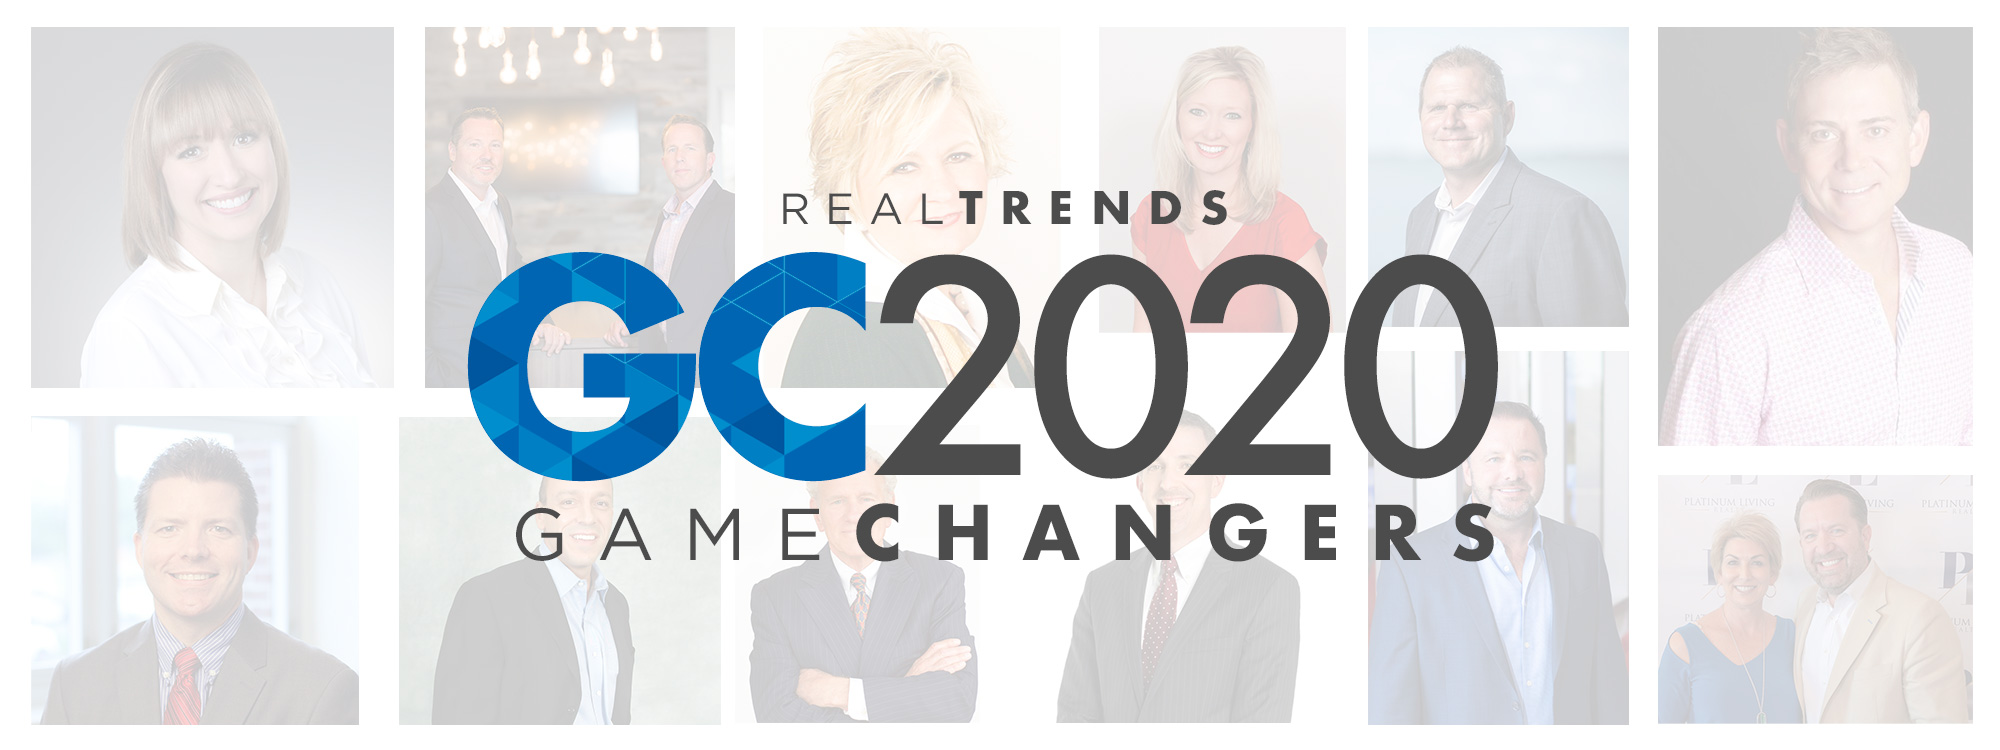 REAL-Trends-Game-Changers-2020-Thumbs-Banner-Logo